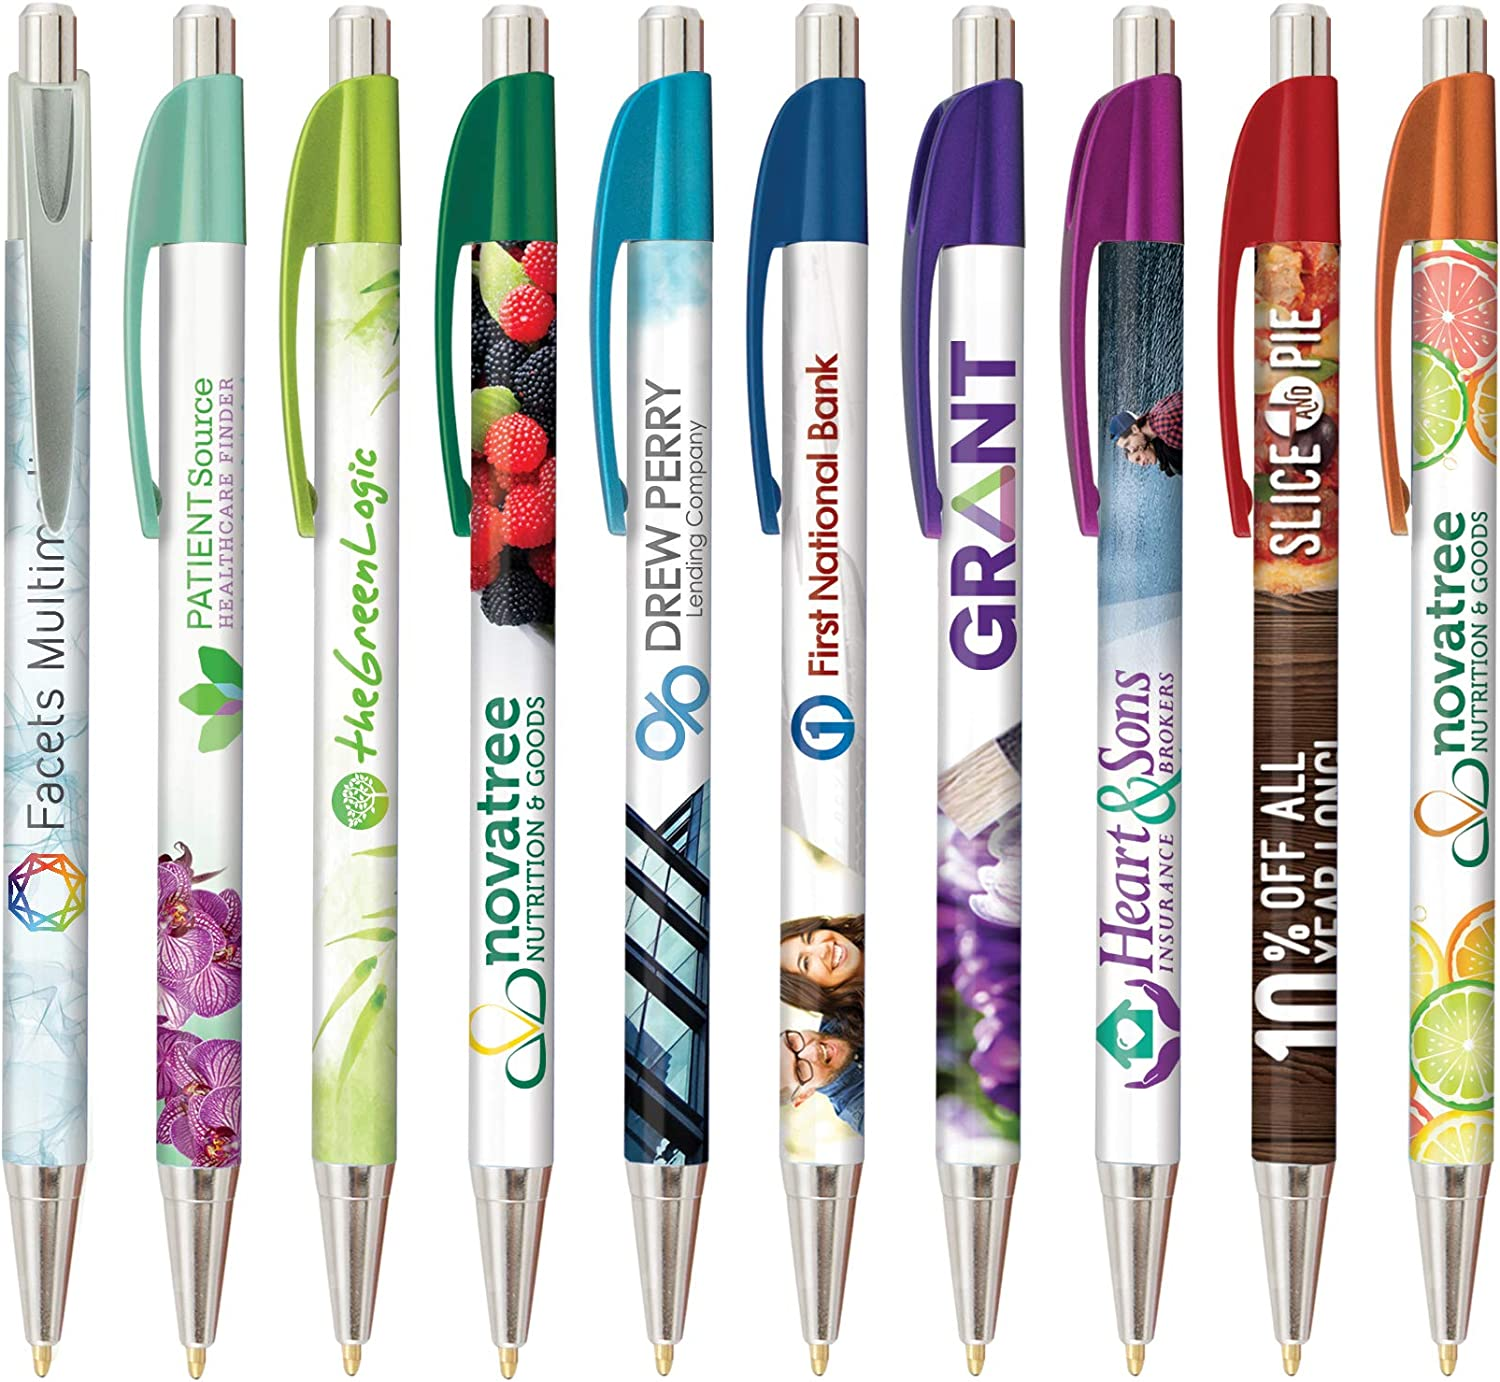 Personalized Elite Slim Metallic Max 79% OFF Click Your Al sold out. Log Pen with Printed